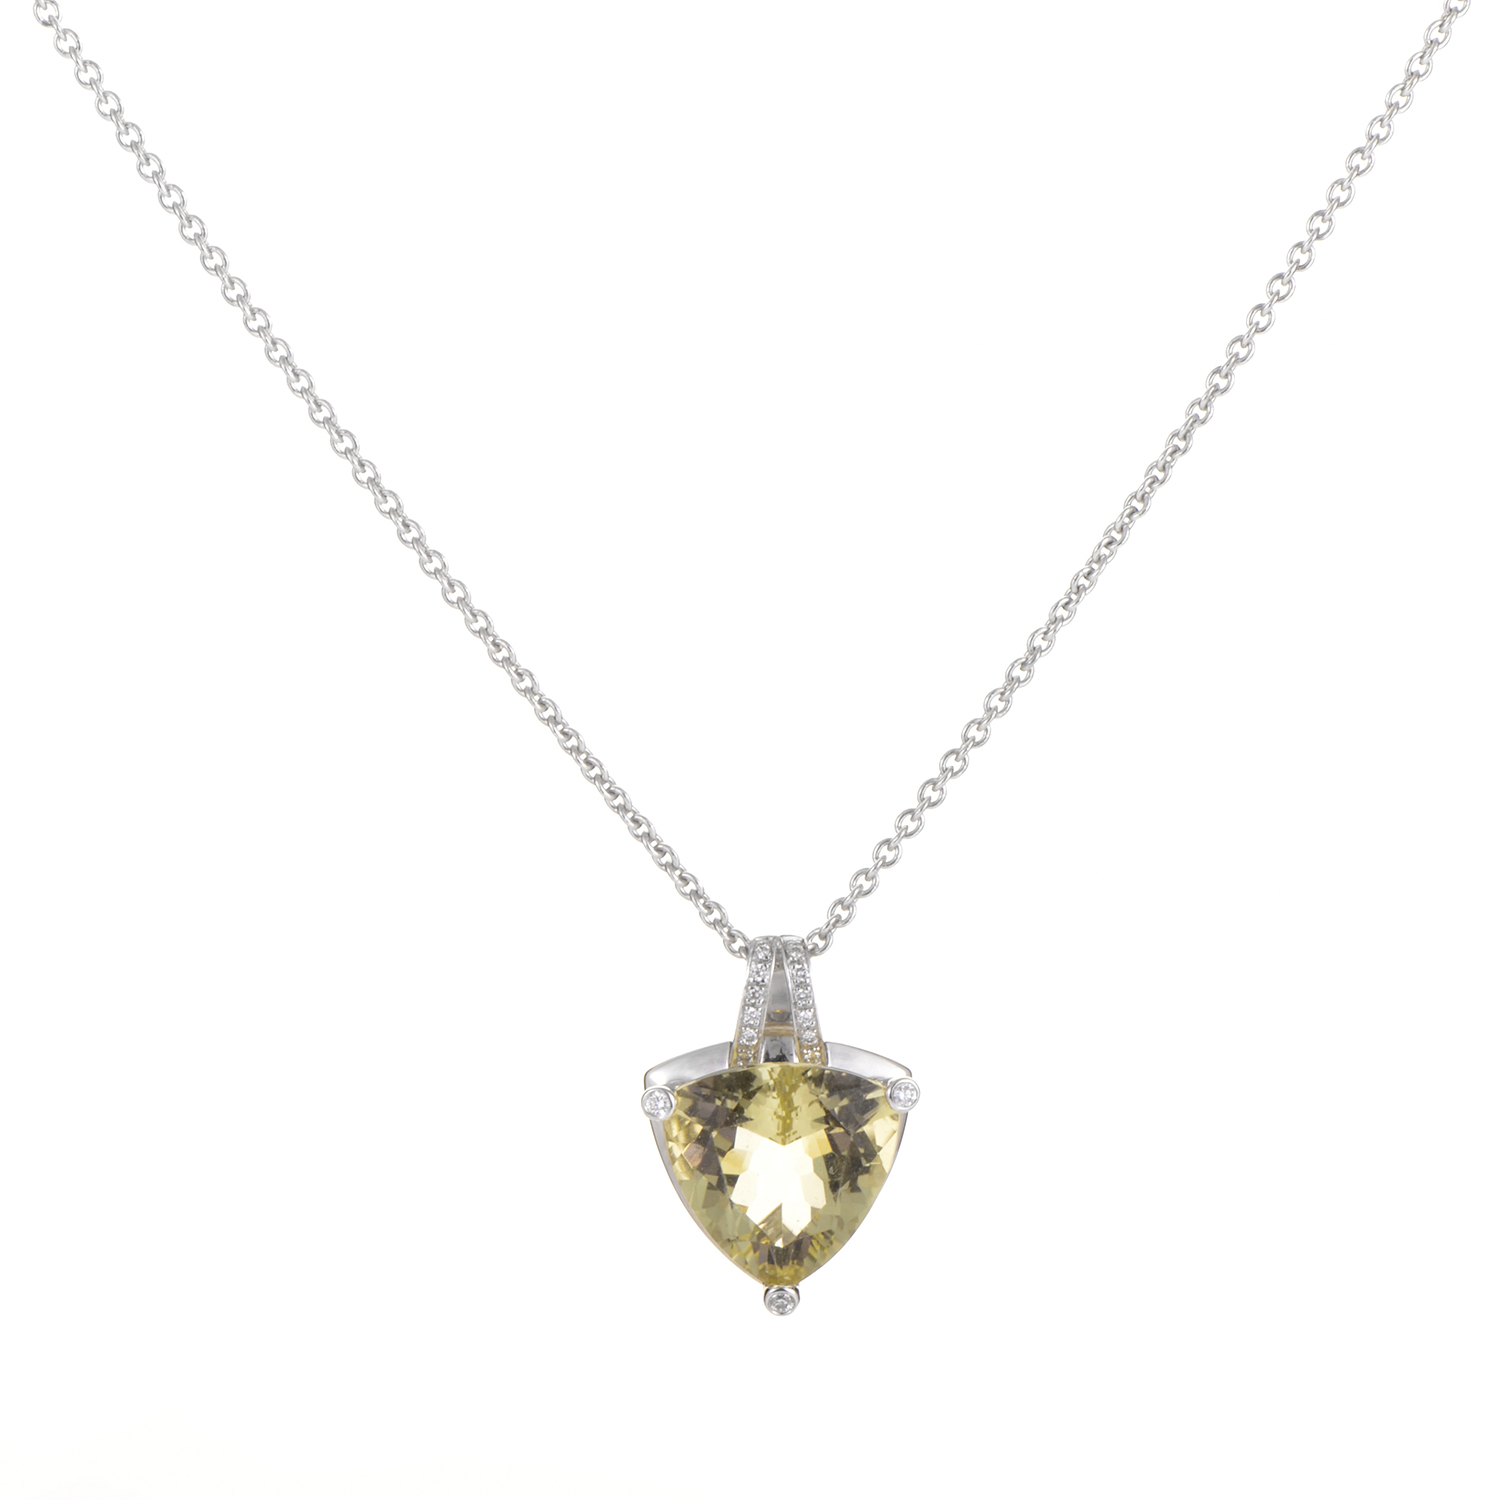 18K White Gold Lemon Quartz & Diamond Necklace